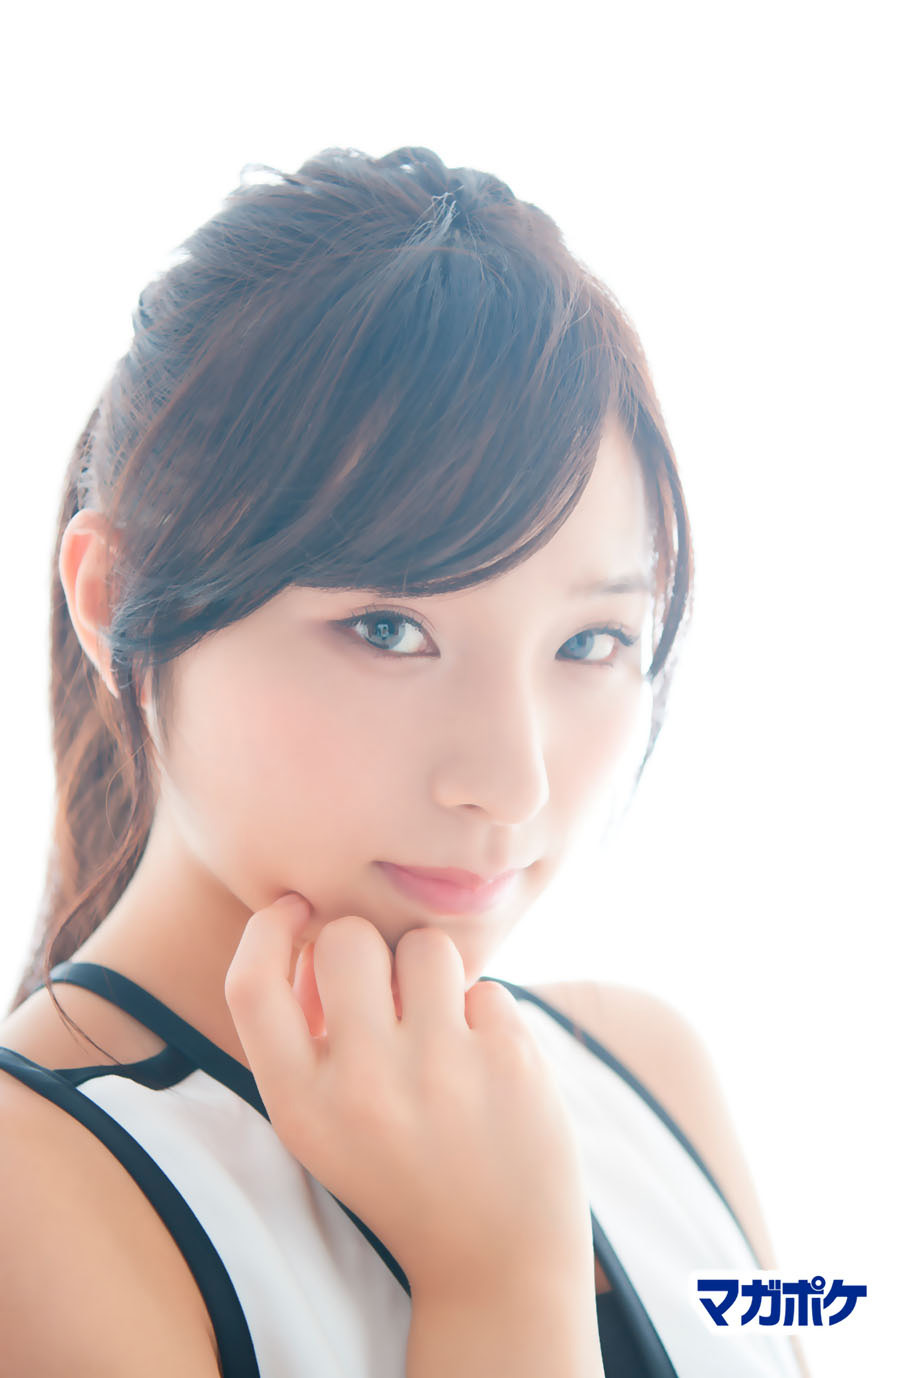 Hidaritomo Ayaka 左伴彩佳, AKB48 Team8 x Weekly Maga Cover Competition